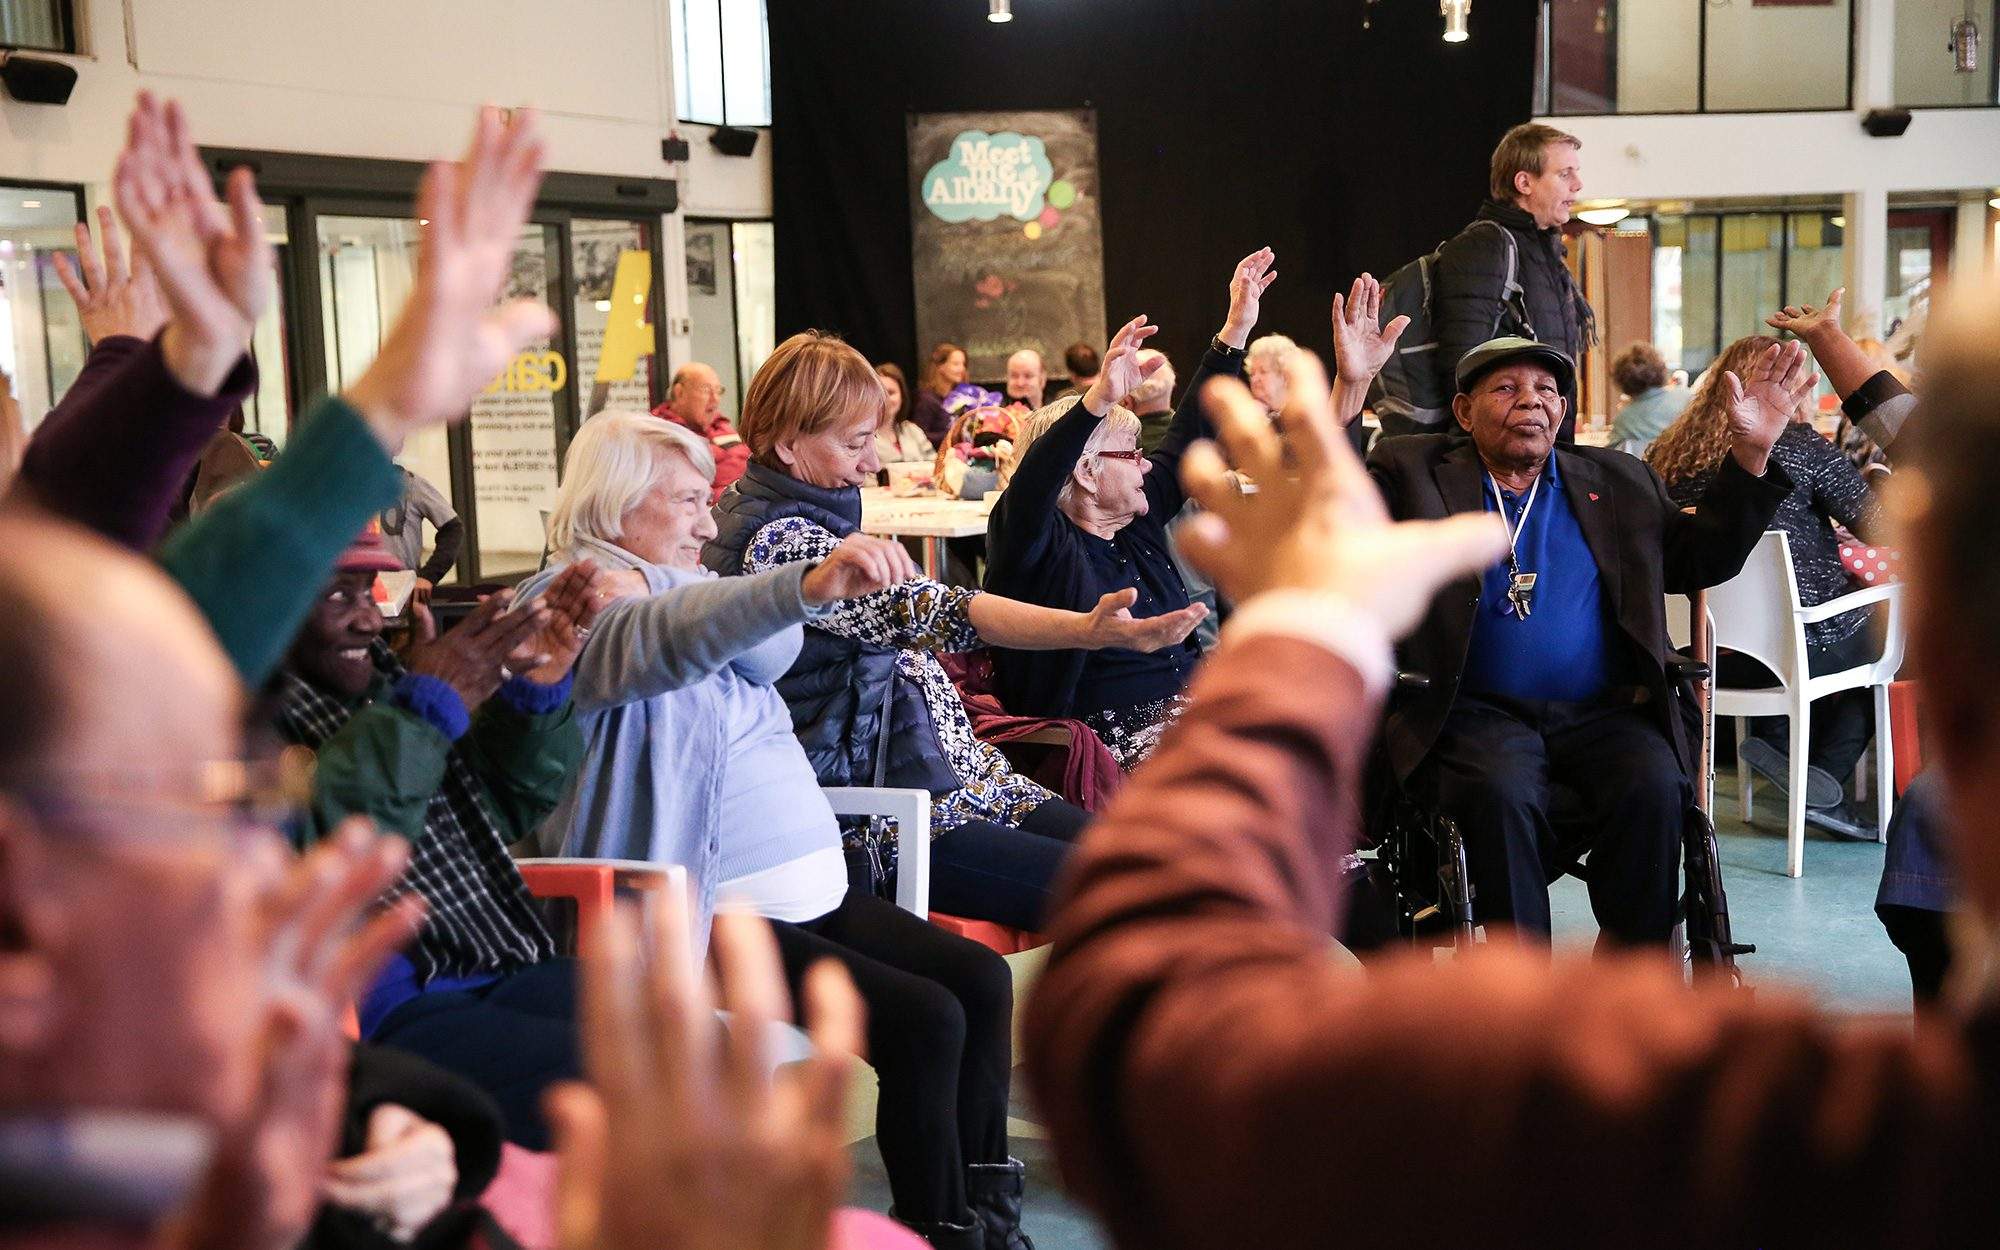 group of Older people waving arms around